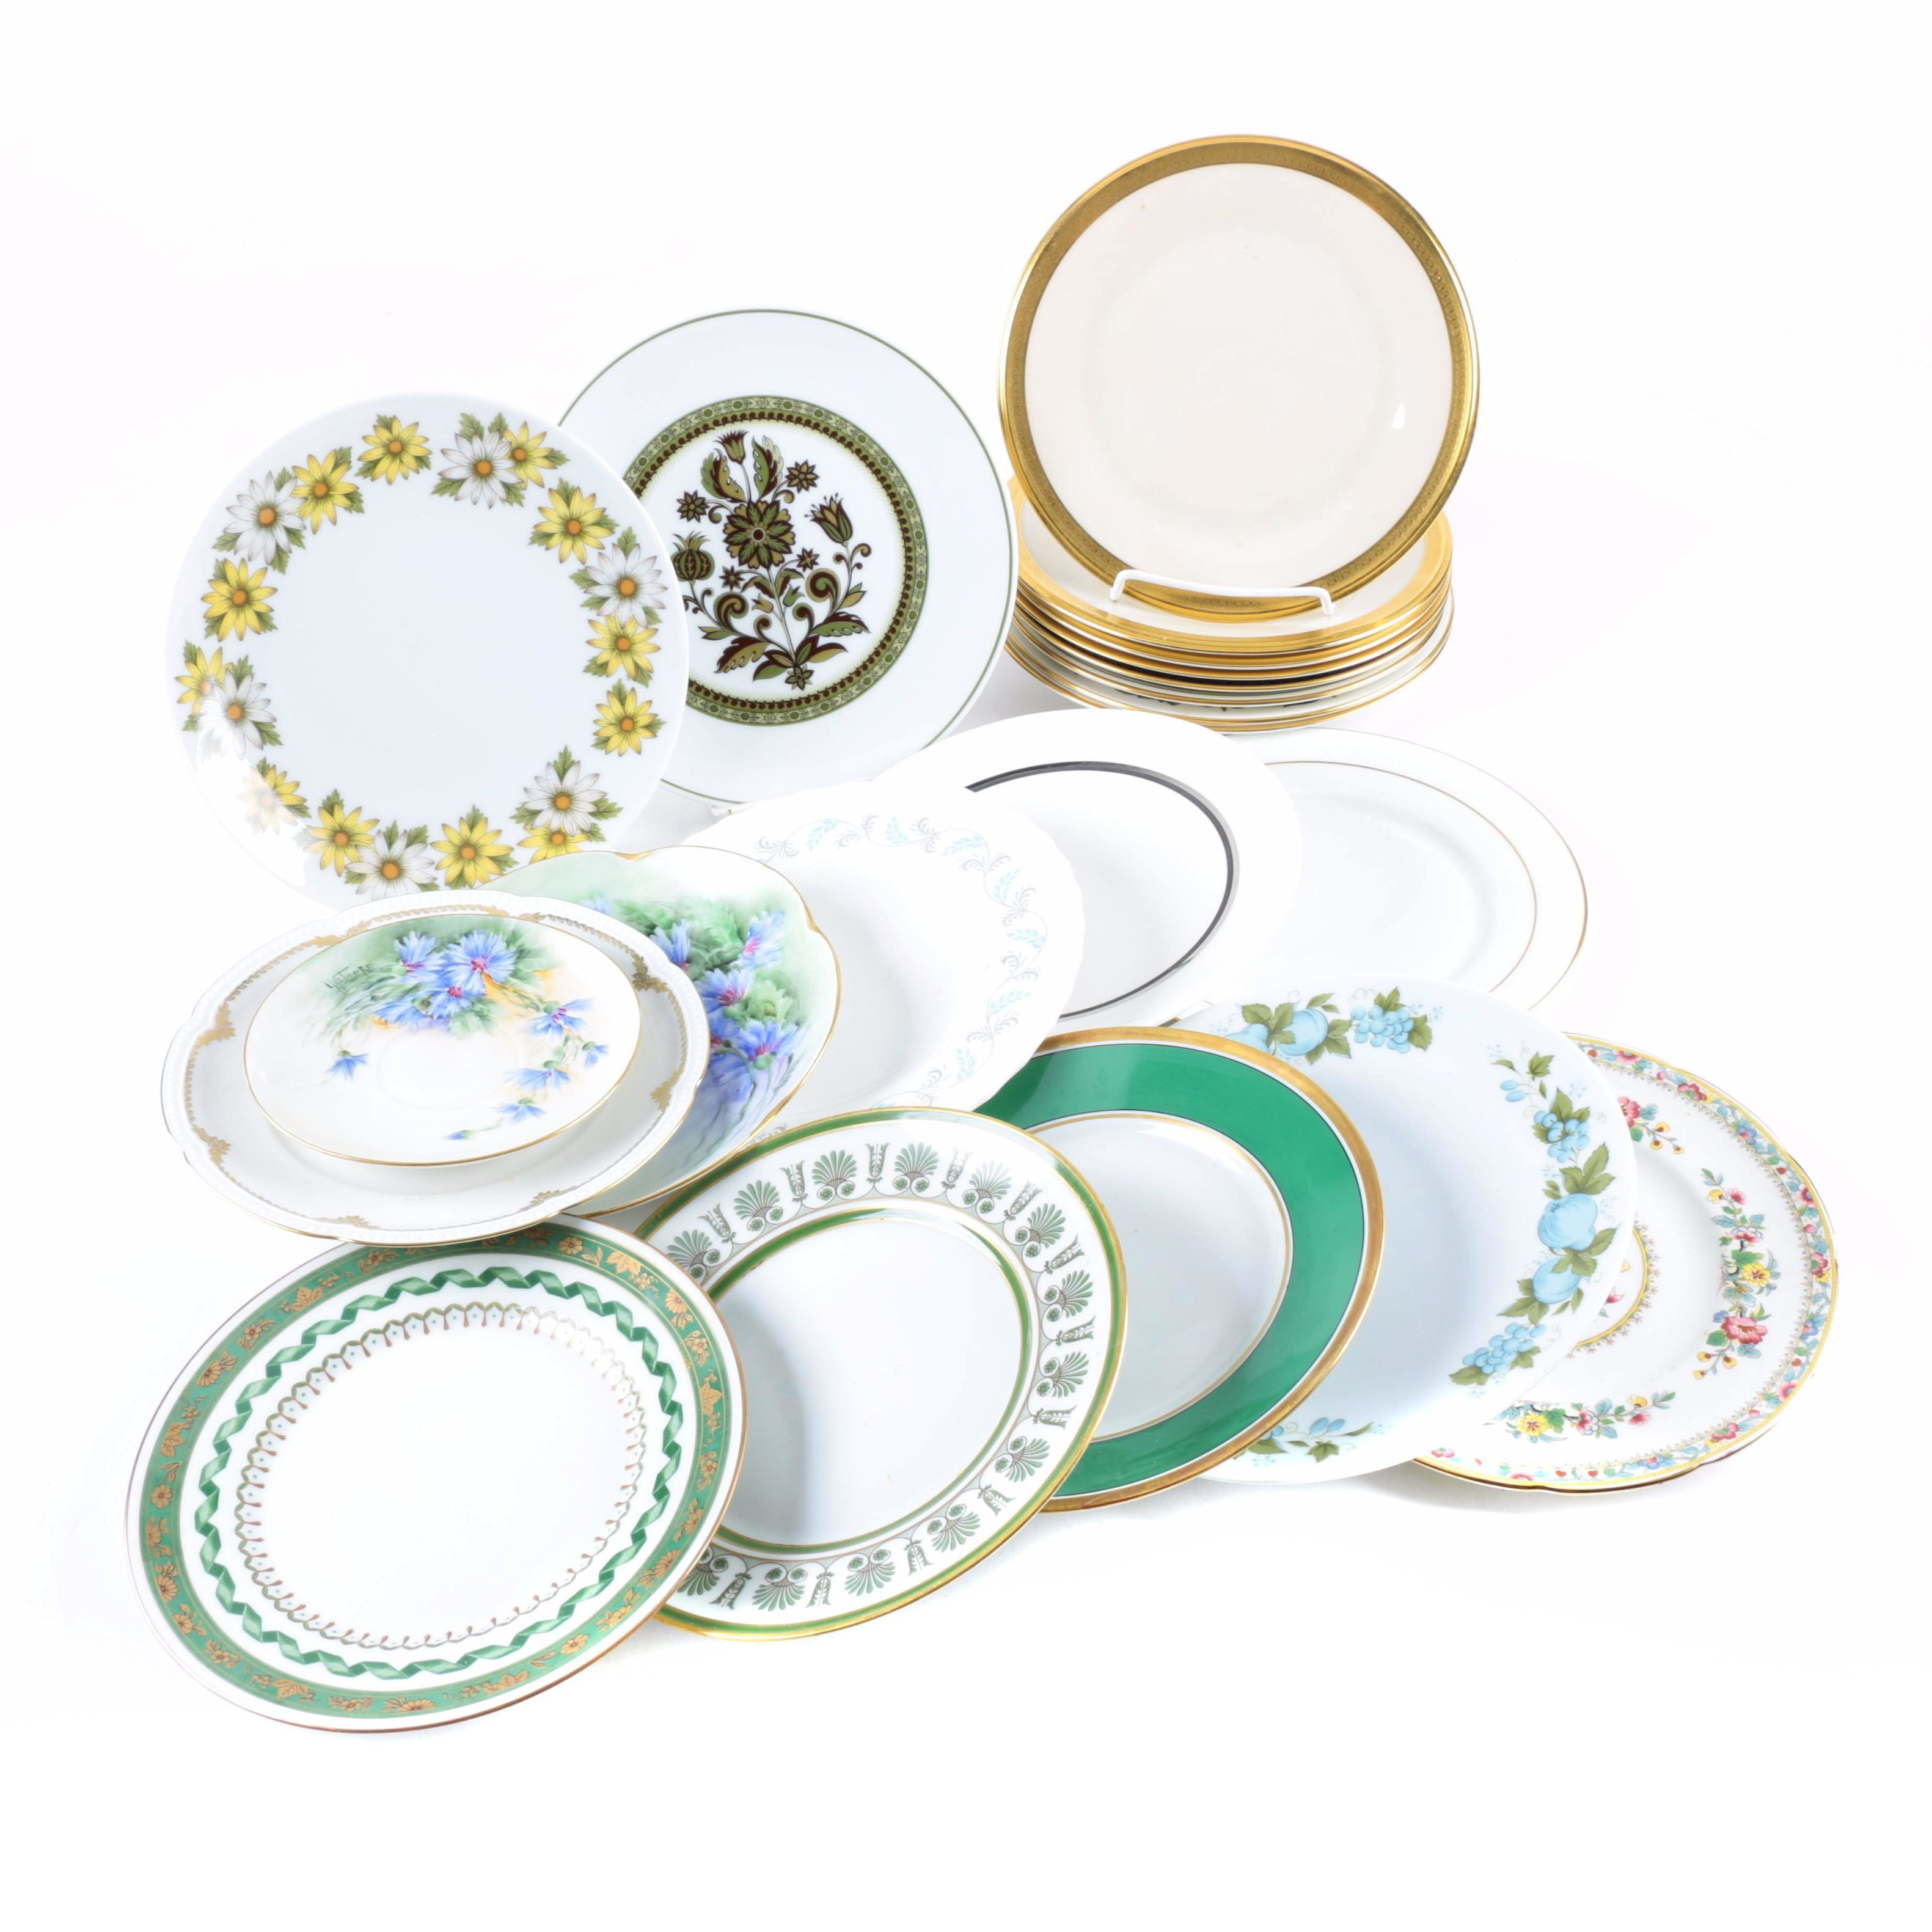 Porcelain Plates Including Wedgwood and Royal Crown Derby